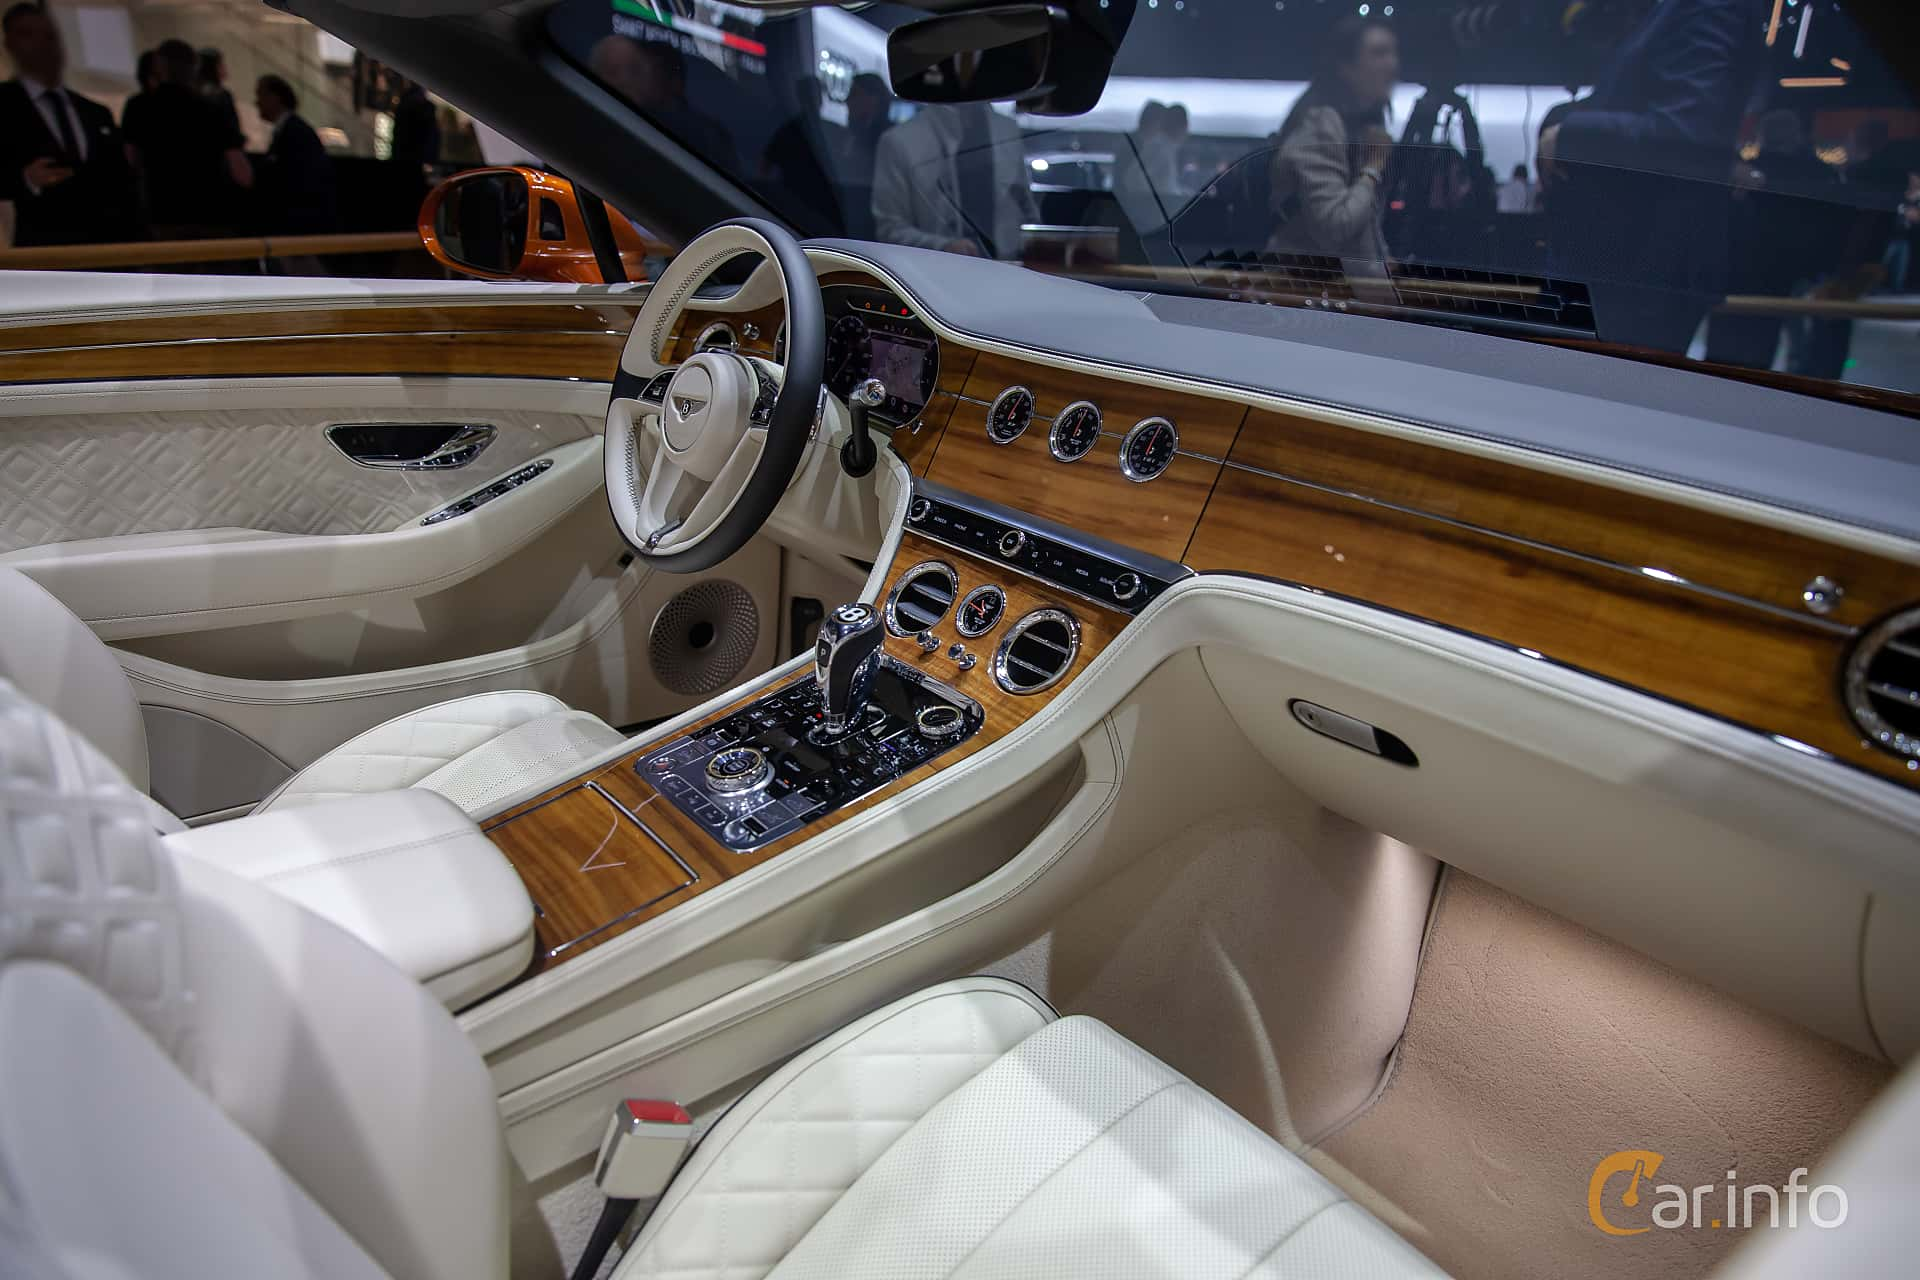 Bentley Continental GTC 6.0 W12 TSI DCT, 635hp, 2019 at Geneva Motor Show 2019